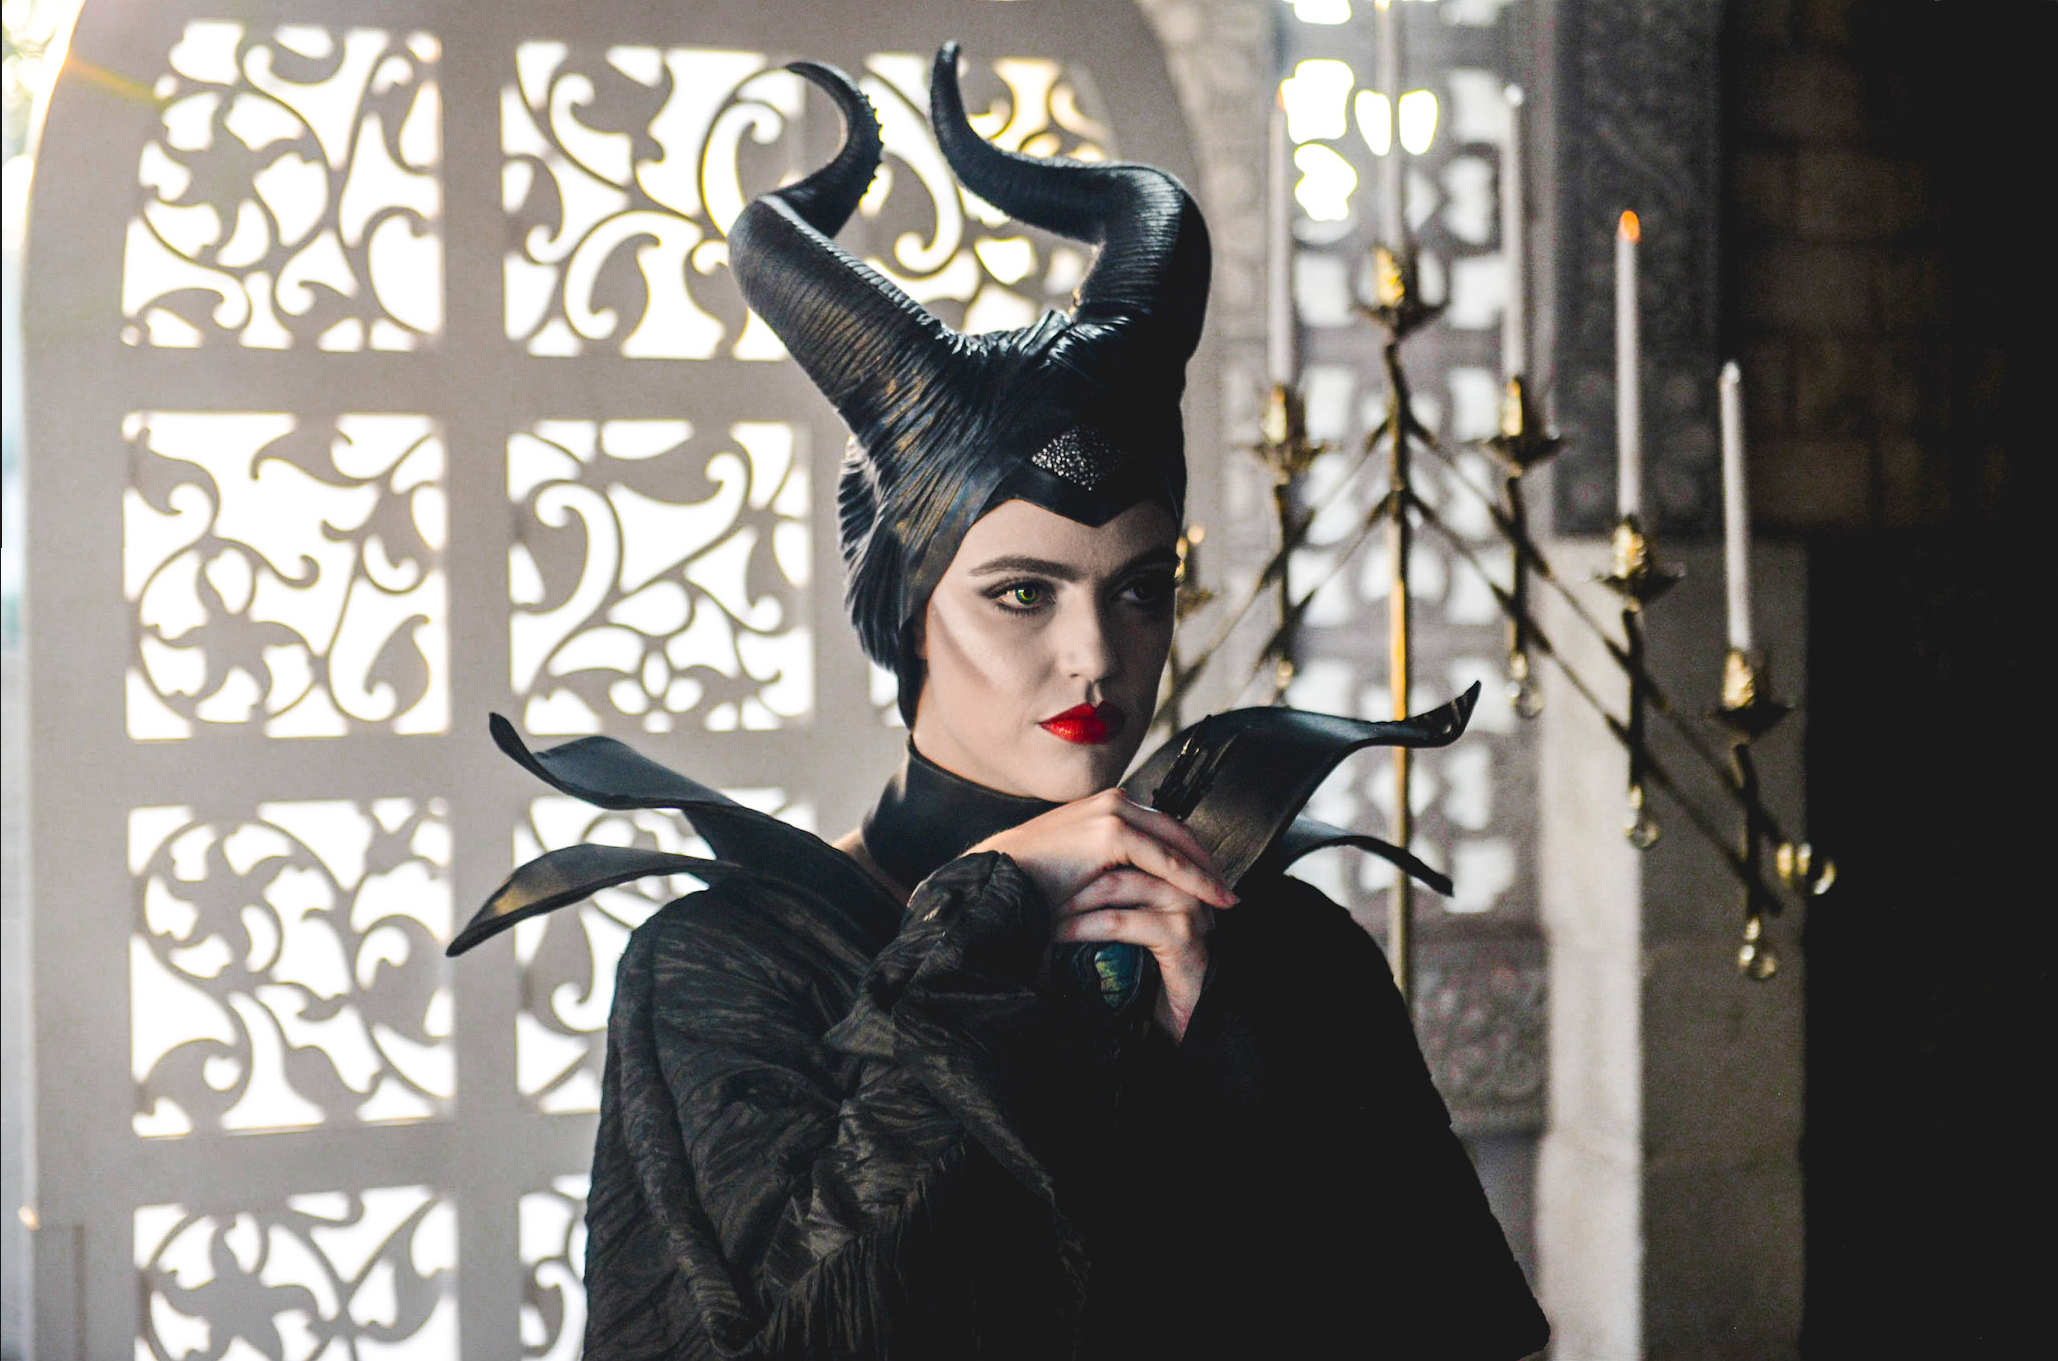 leah maleficent